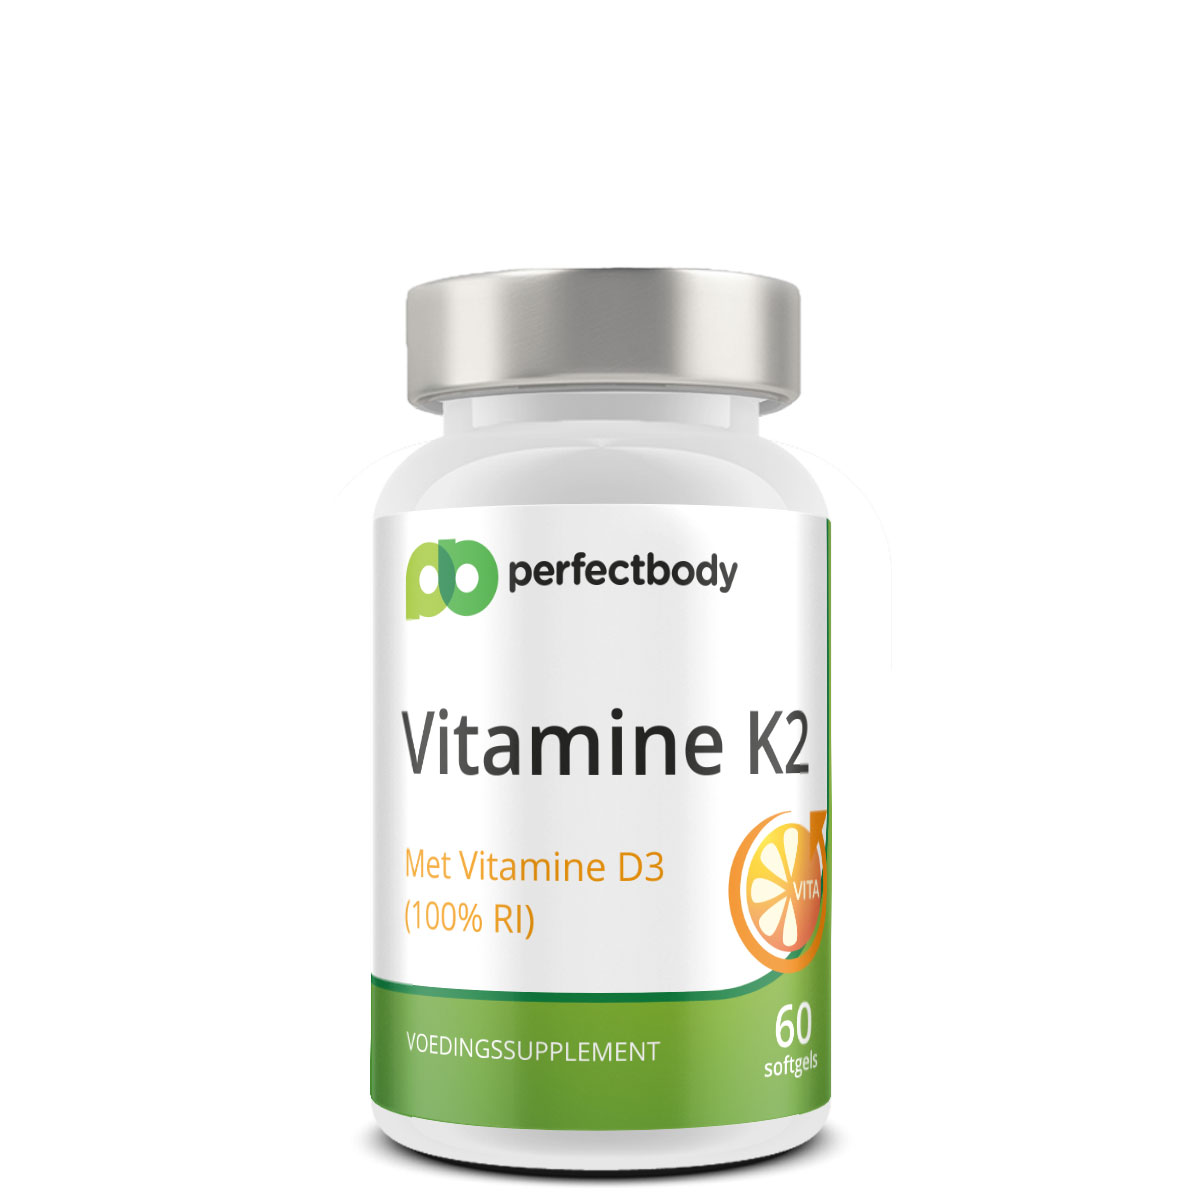 Perfectbody Vitamine K2 + D3 - 60 Softgels